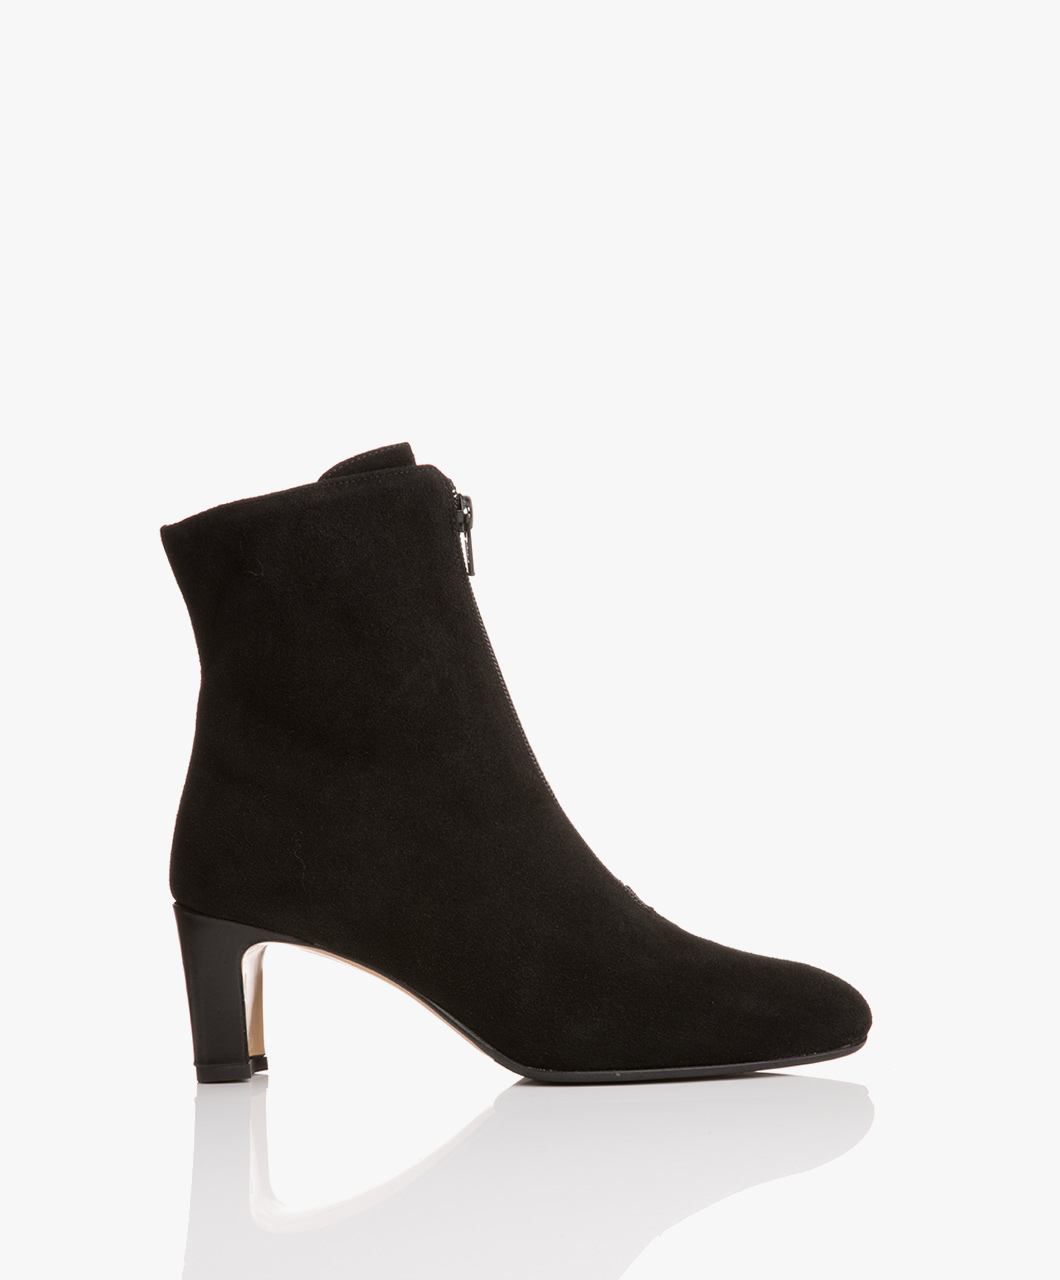 Immagine di ATP Atelier Ankle Boots Black Suede Arnica Zip Ankle